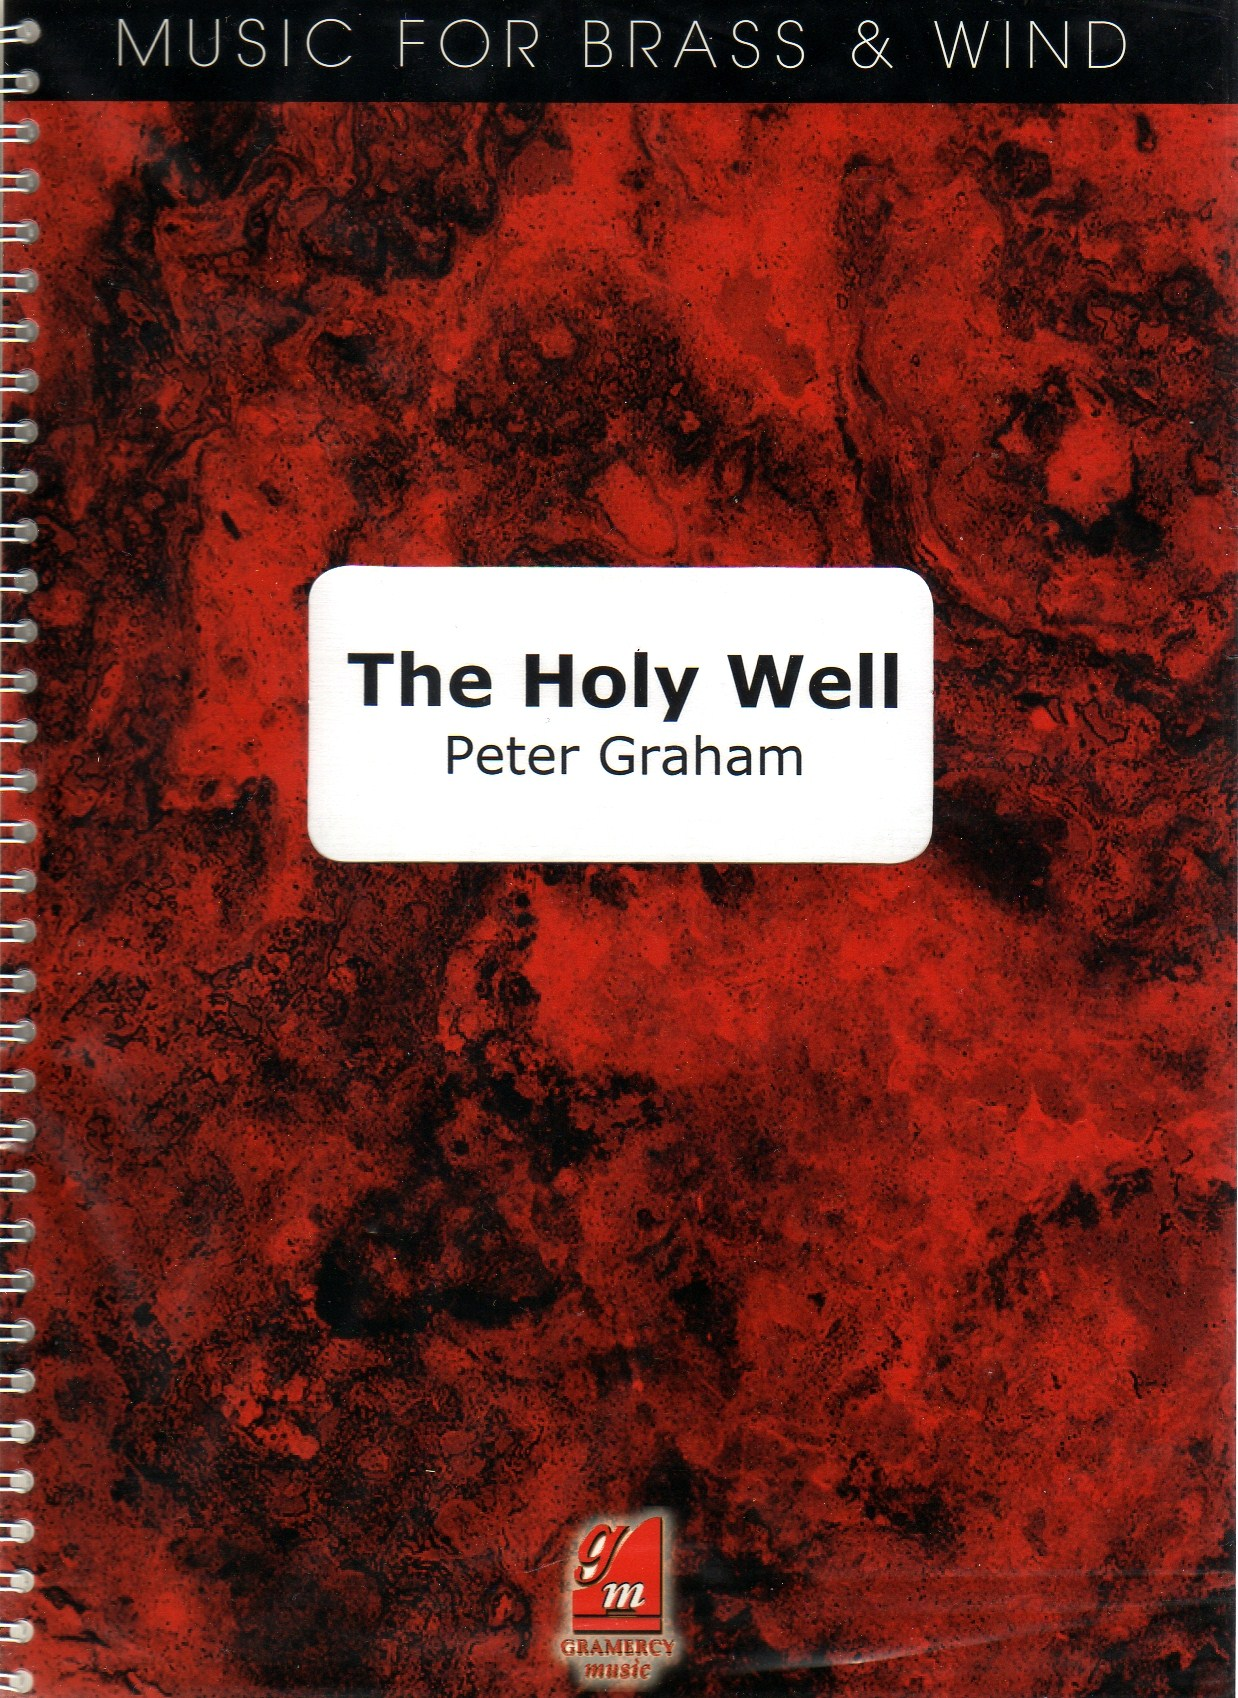 Peter Graham/ The Holy Well  ピーター・グレイアム/ホーリー・ウェル